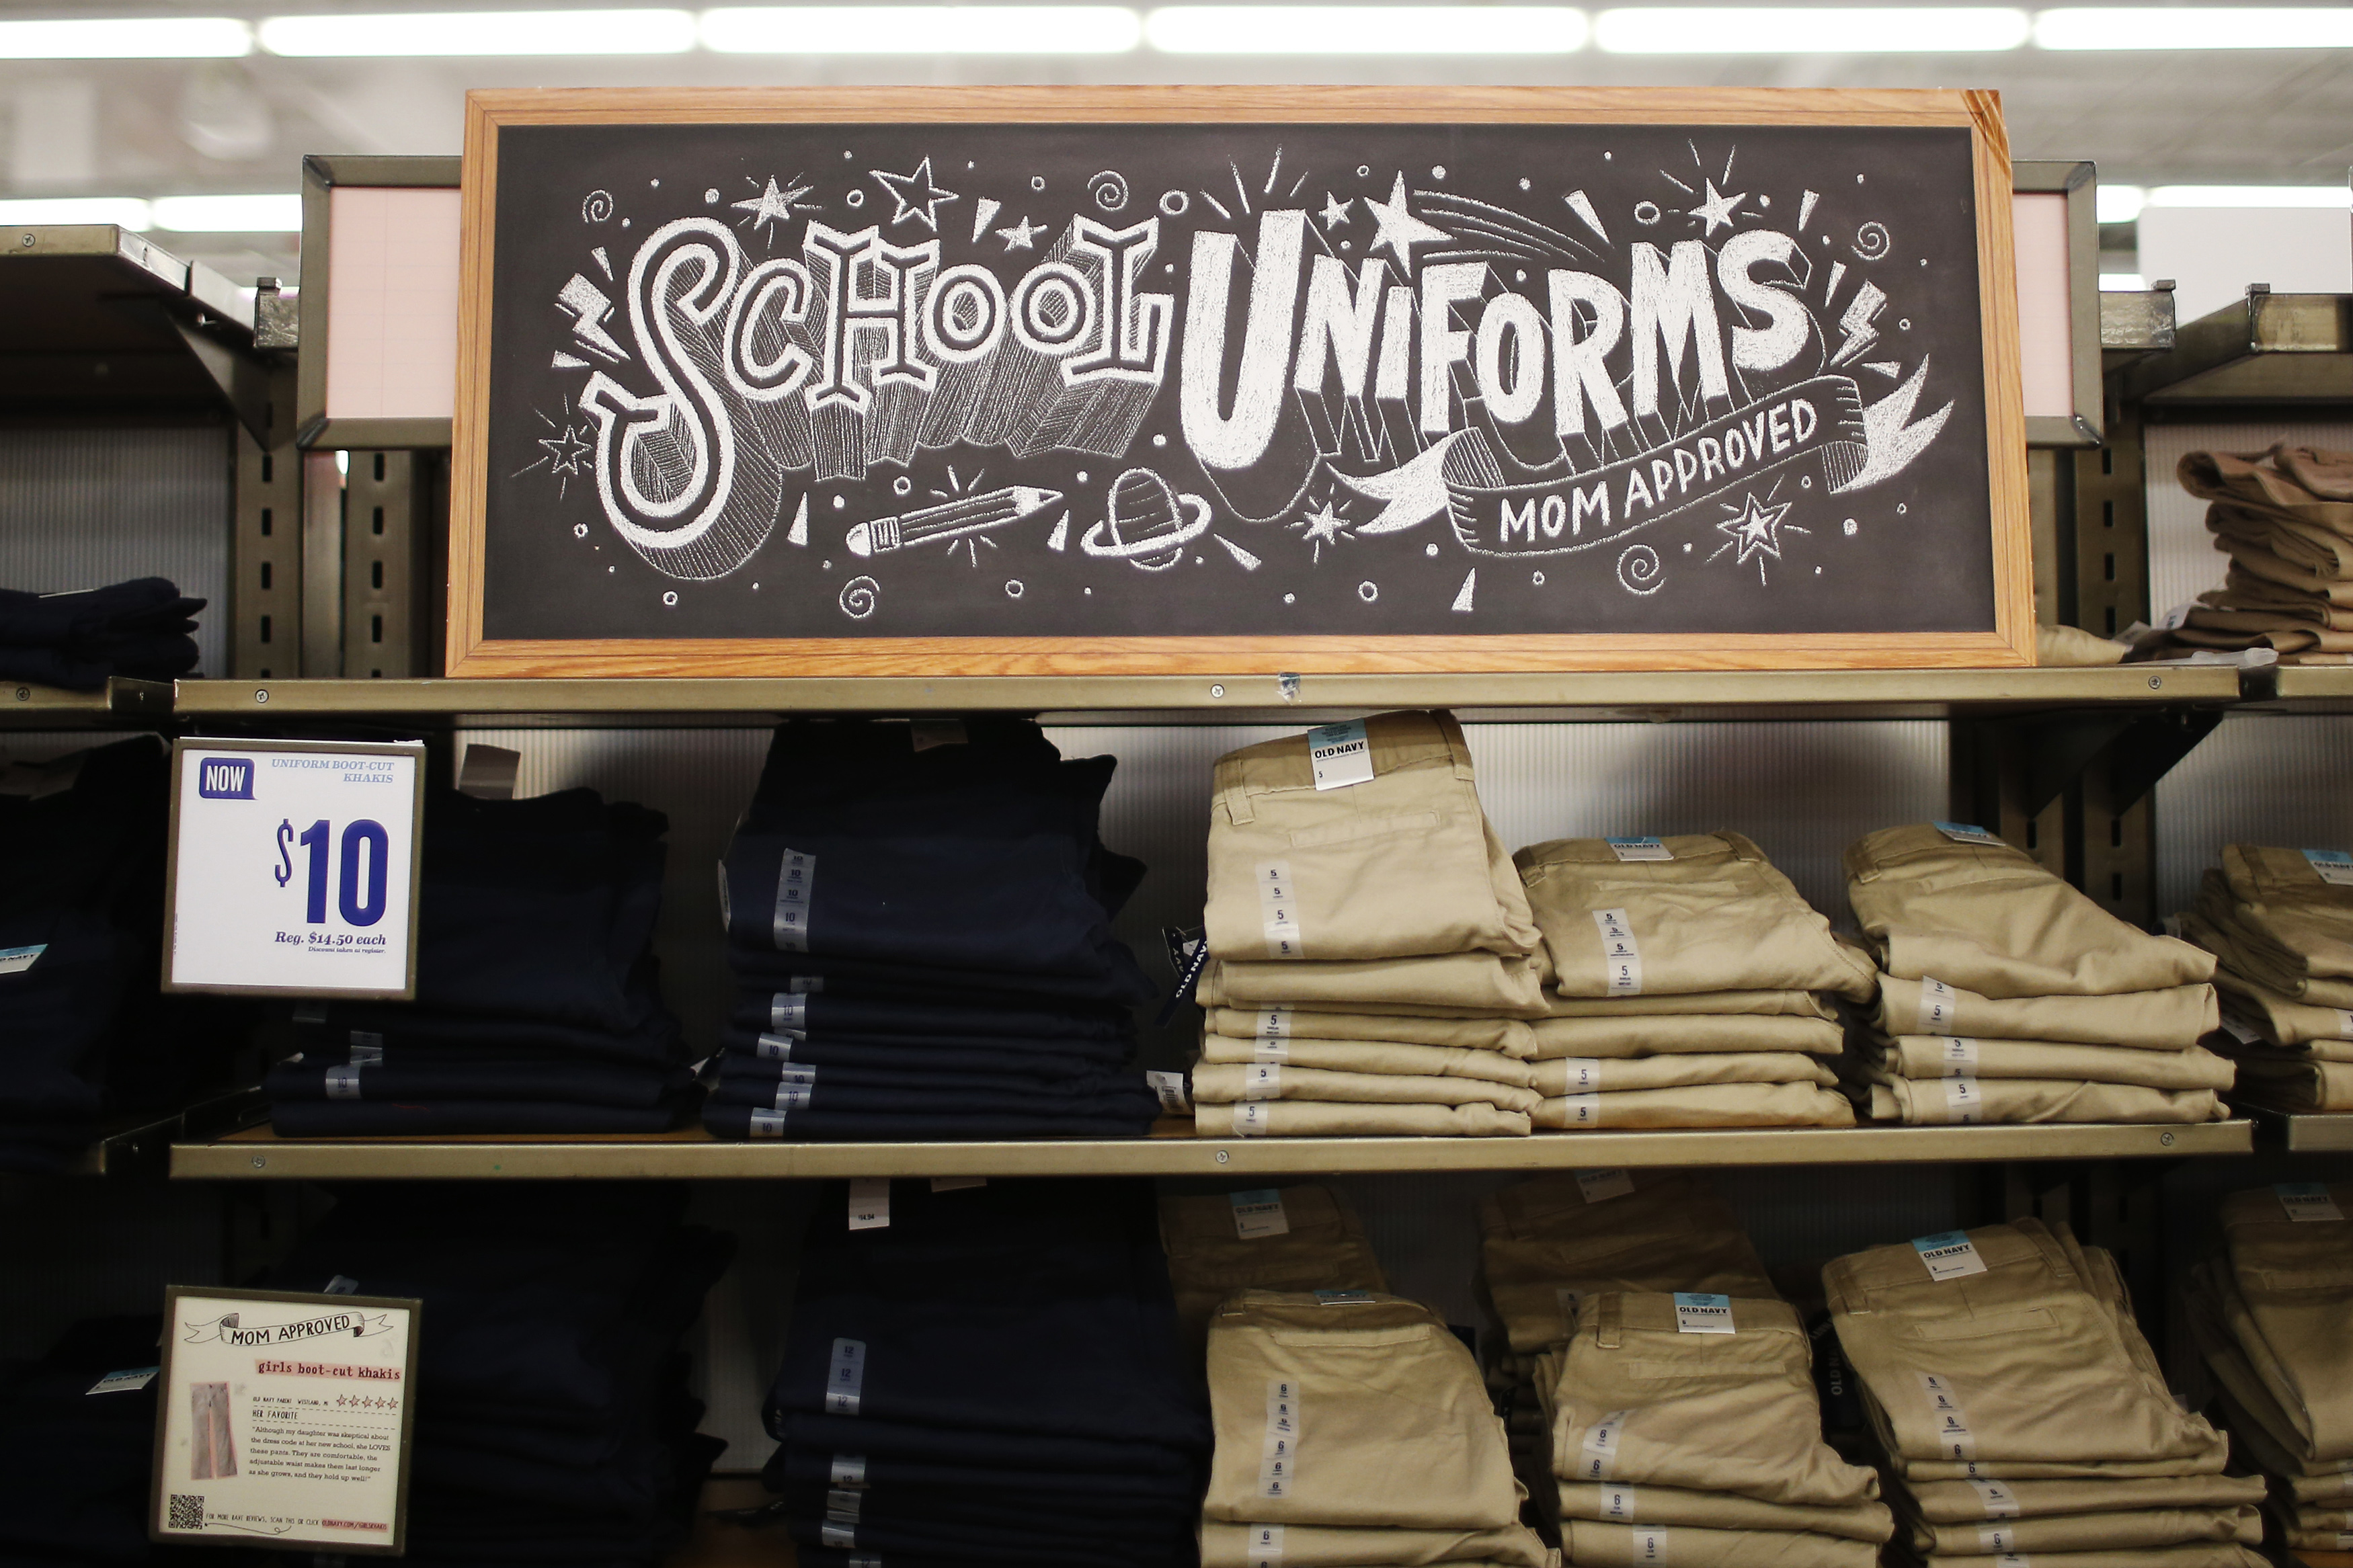 """A stack of school uniforms are seen on the shelves inside the Old Navy clothing shop during a """"ChildSpree"""" back-to-school shopping event in San Jose, August 3, 2013. The event, hosted annually by the Salvation Army, provides 100 children in need of economic assistance, $100 each to shop for new clothes in preparation for the upcoming school year, according to a representative from the organization. REUTERS/Stephen Lam (UNITED STATES - Tags: BUSINESS EDUCATION SOCIETY) - GM1E984056J01"""